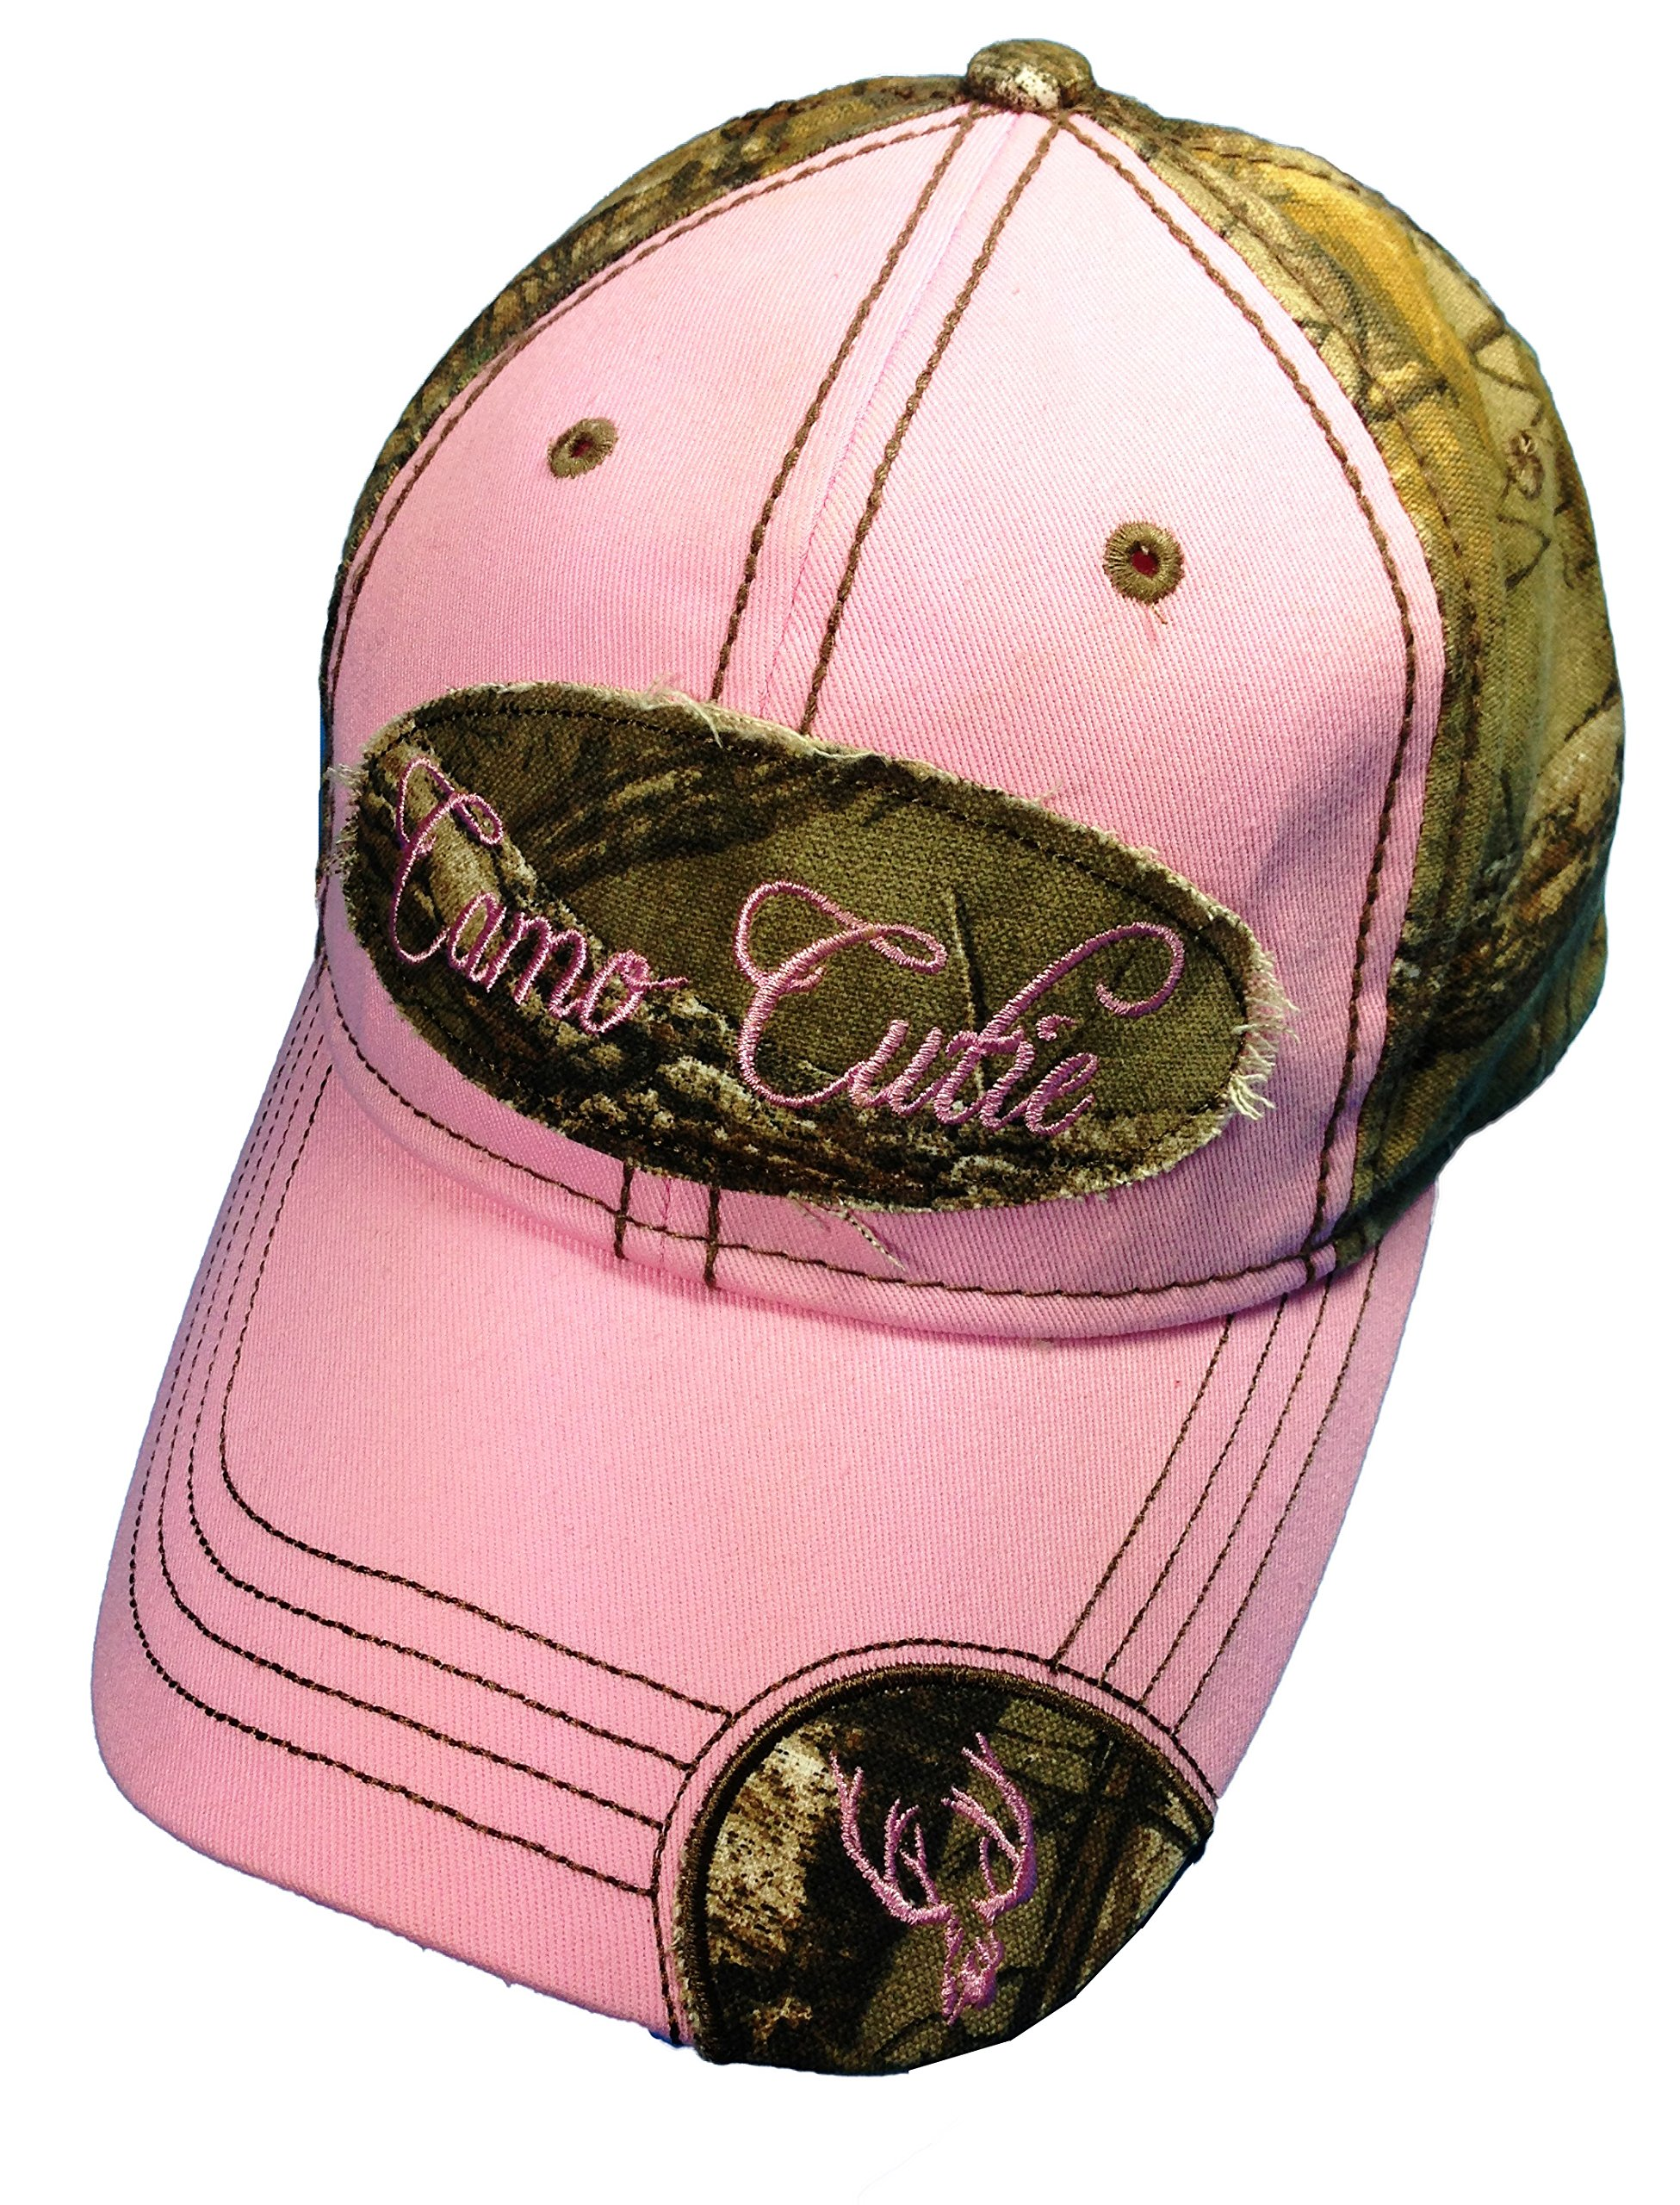 Woman's Realtree Camo Hat with Pink Trim Woman's Camo Ball Cap by BT Outdoors (Image #1)